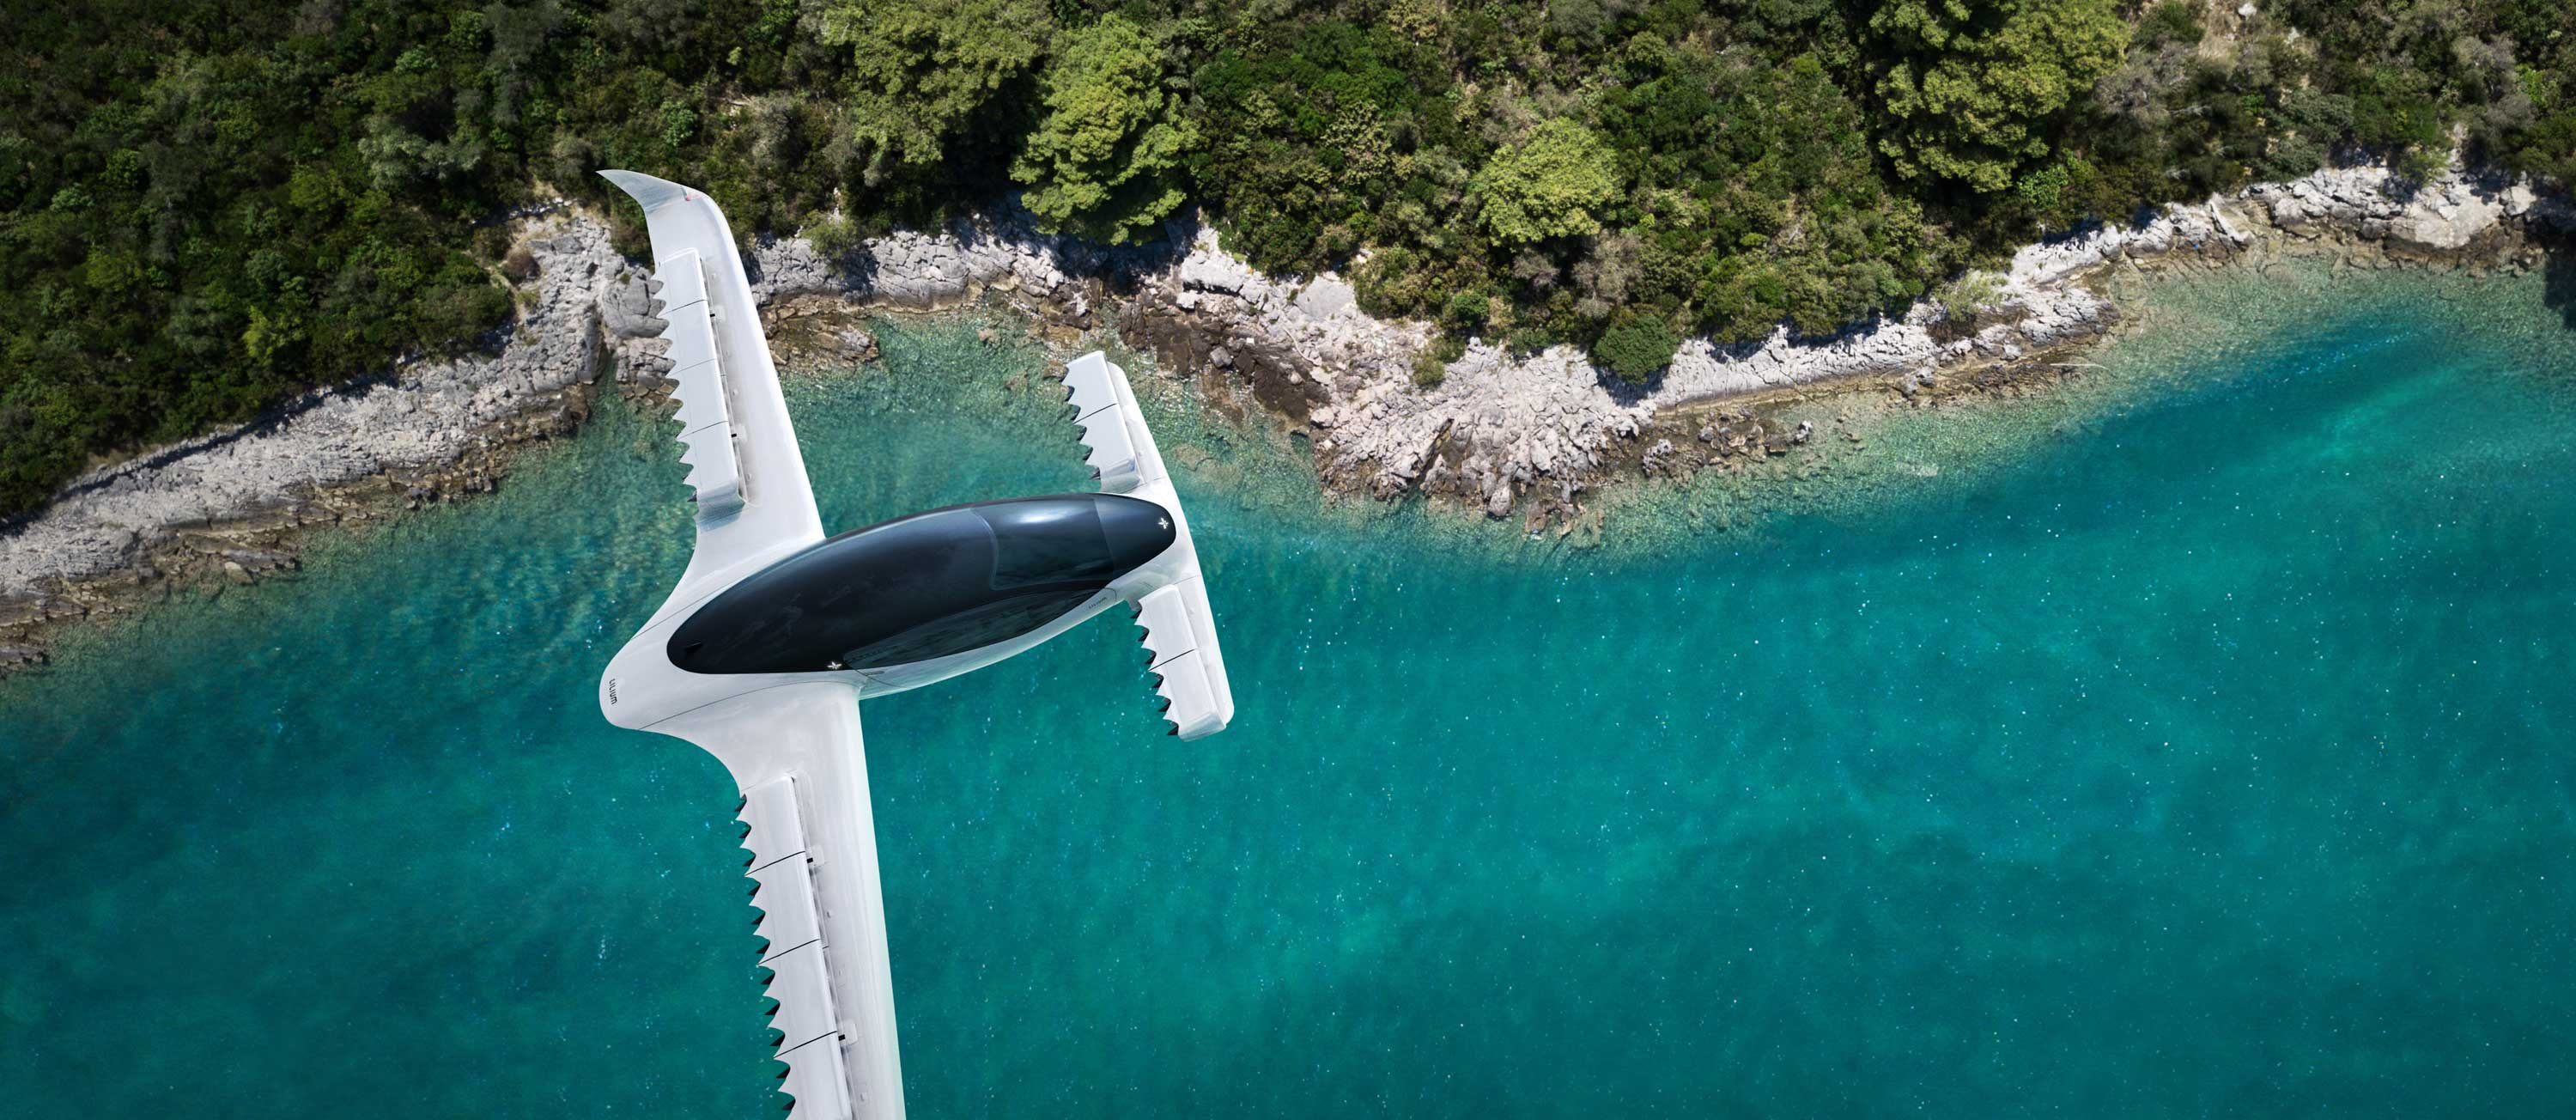 Electric Air Taxis may be a Reality Sooner than Expected thanks to German Startup Lillium